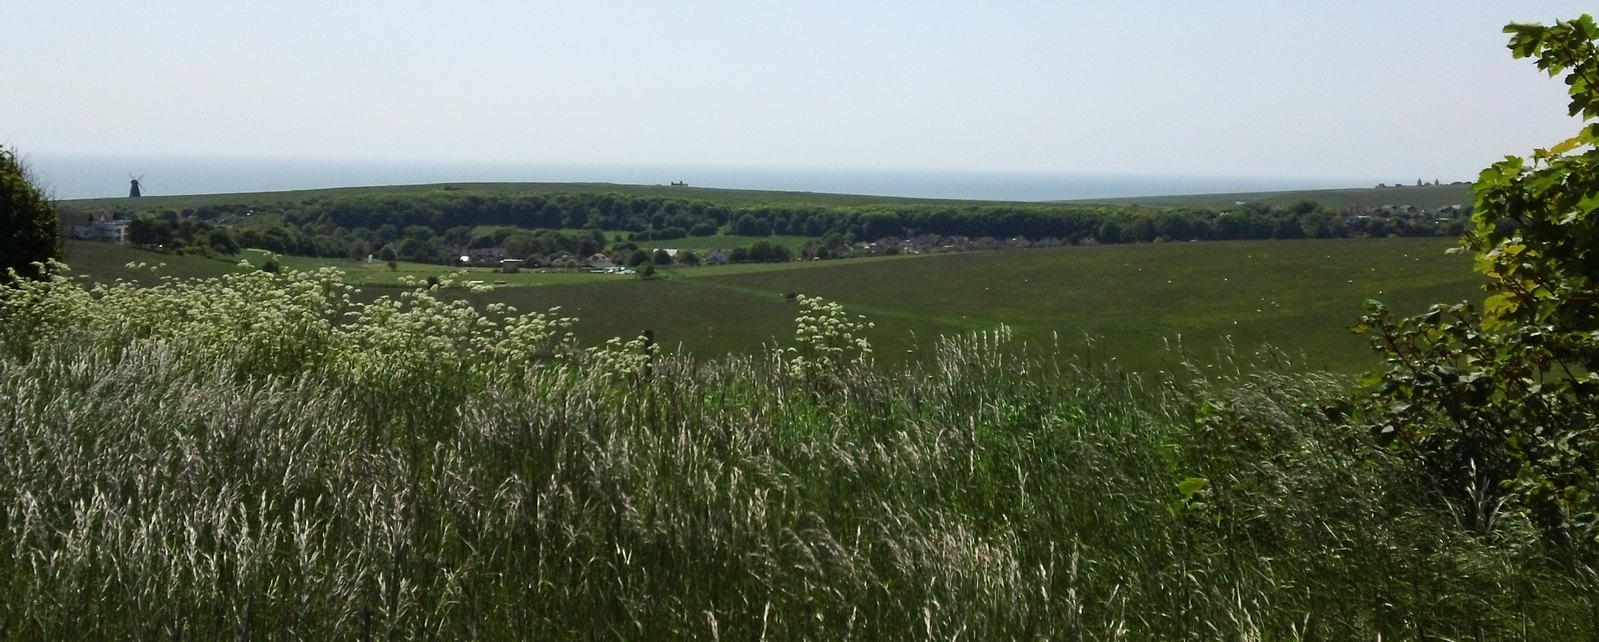 Saturday Walkers Club Extra Walk 134: Lewes to Brighton via Rottingdean Rottingdean and Roedean by the sea